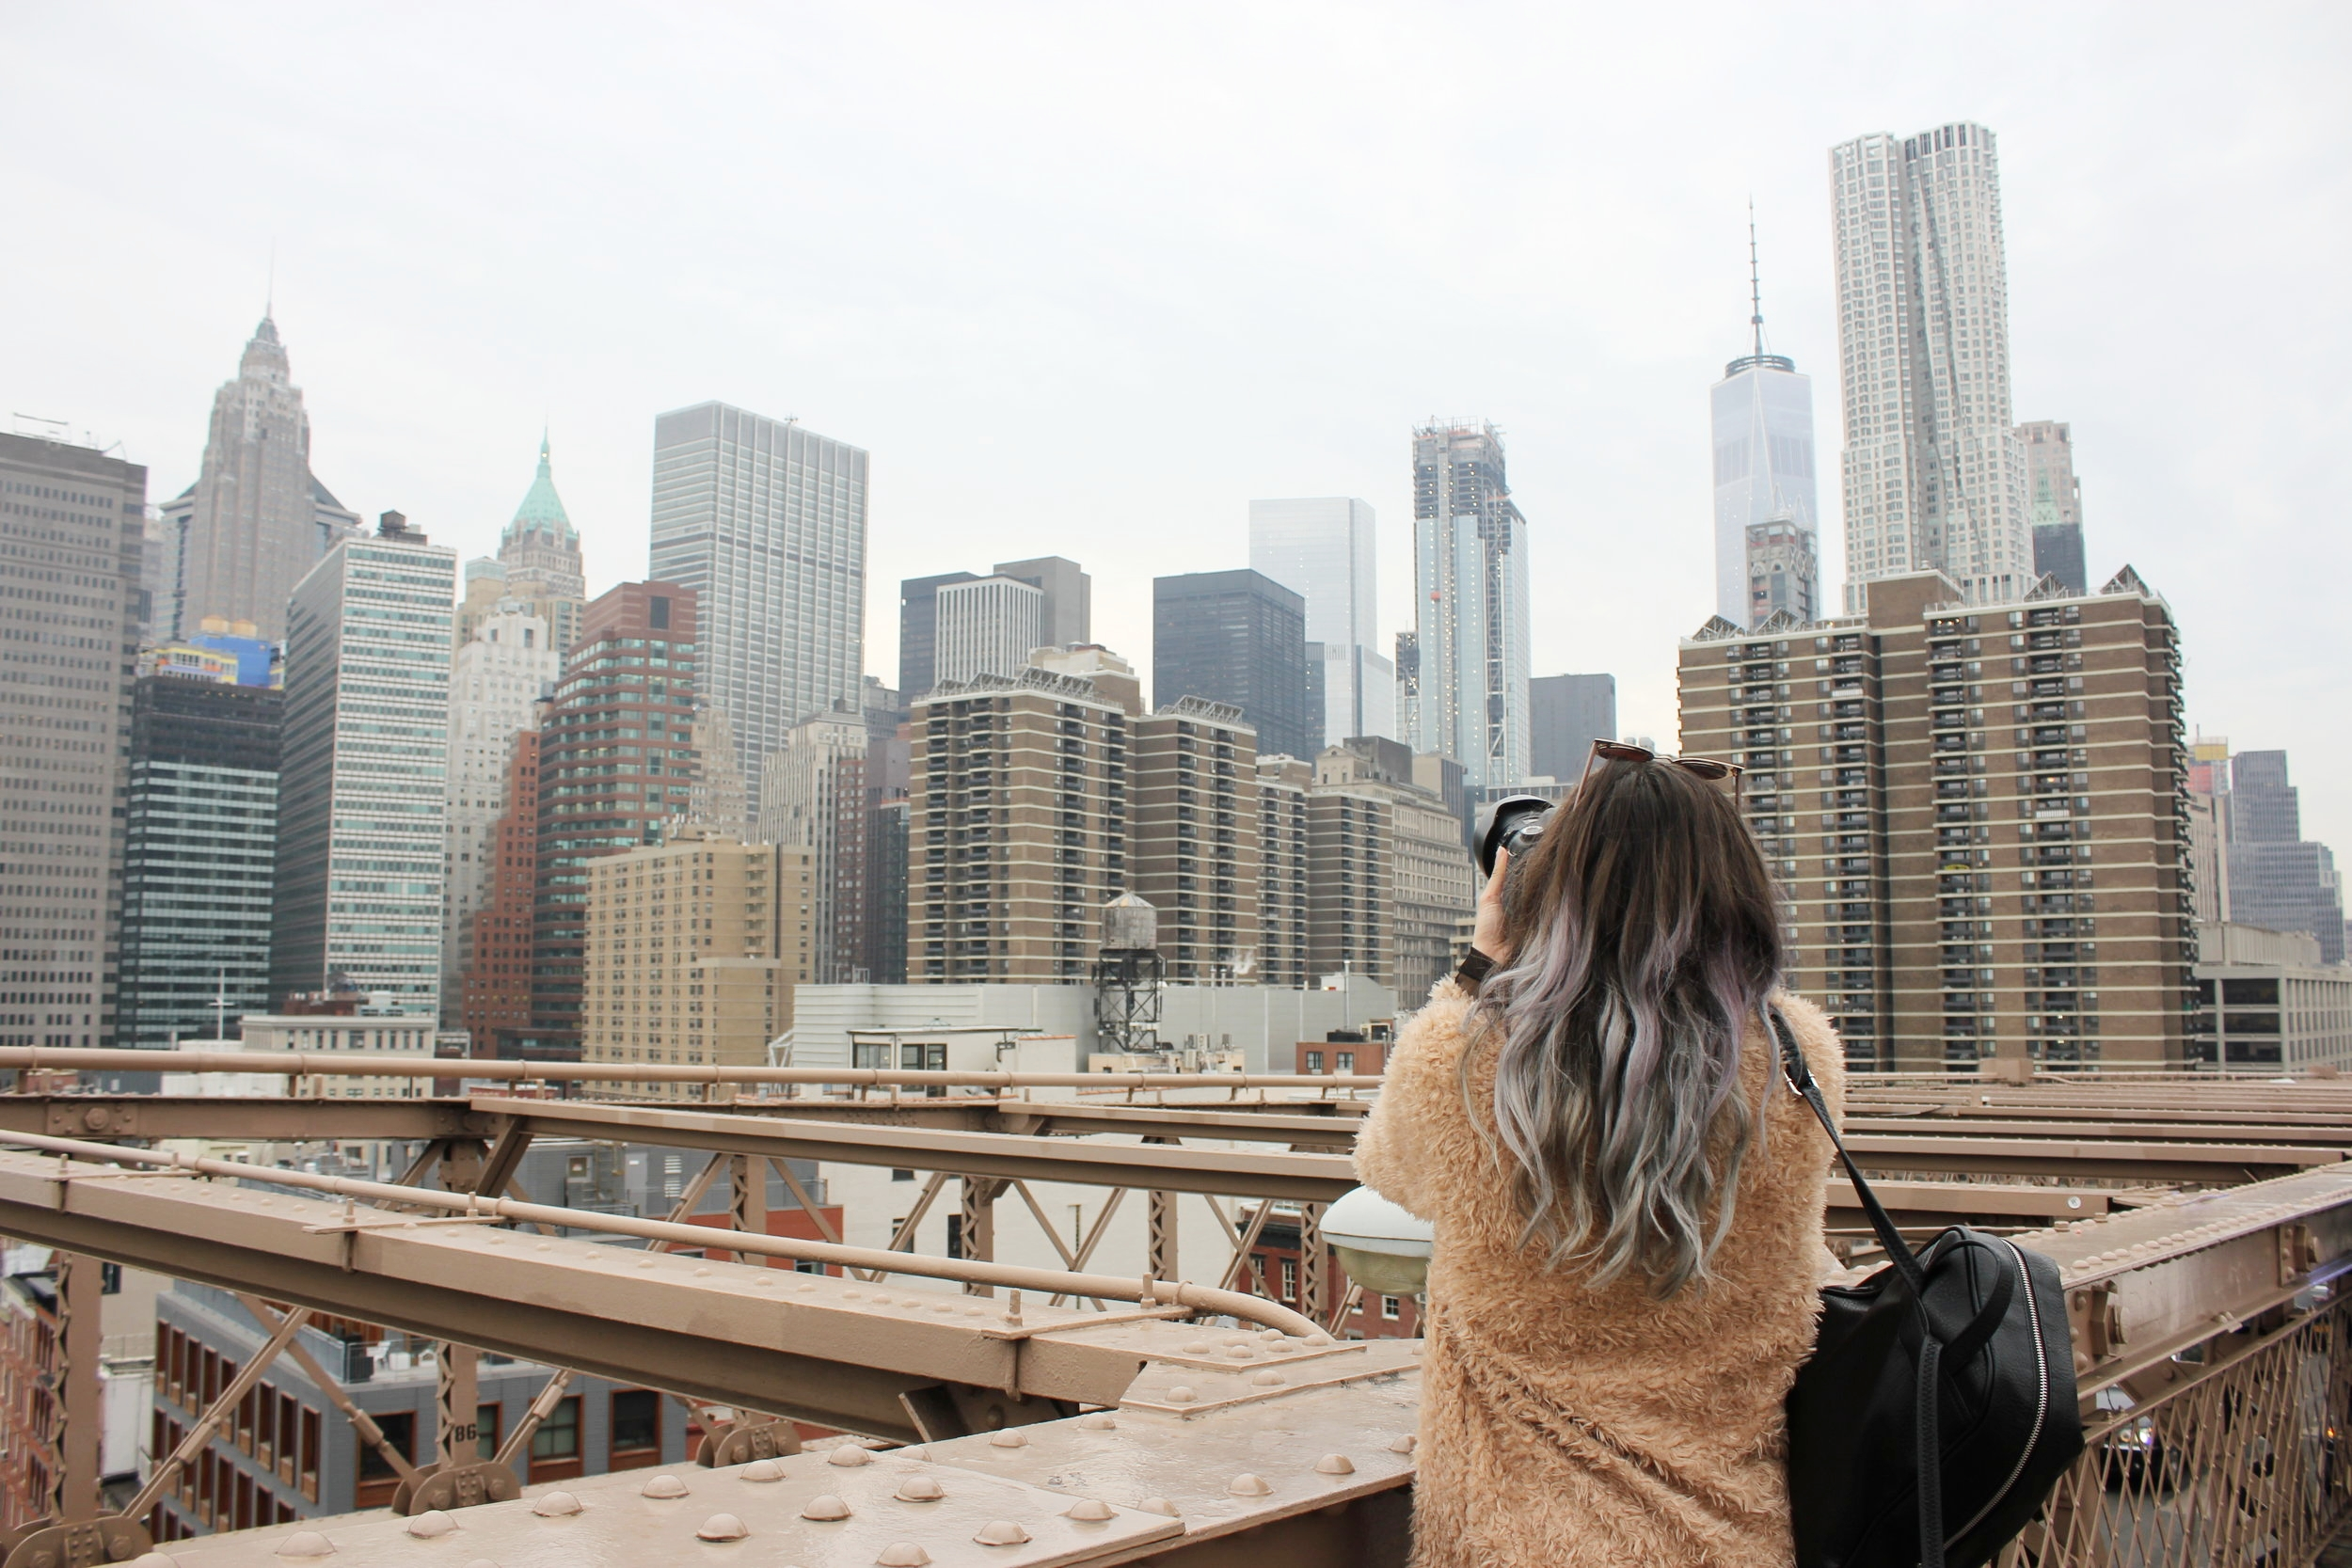 Ready to take on the city that never sleeps? Crash in a local's airbnb and get ready for the adventure, here is a #threadsbabe guide to Manhattan + Brooklyn...